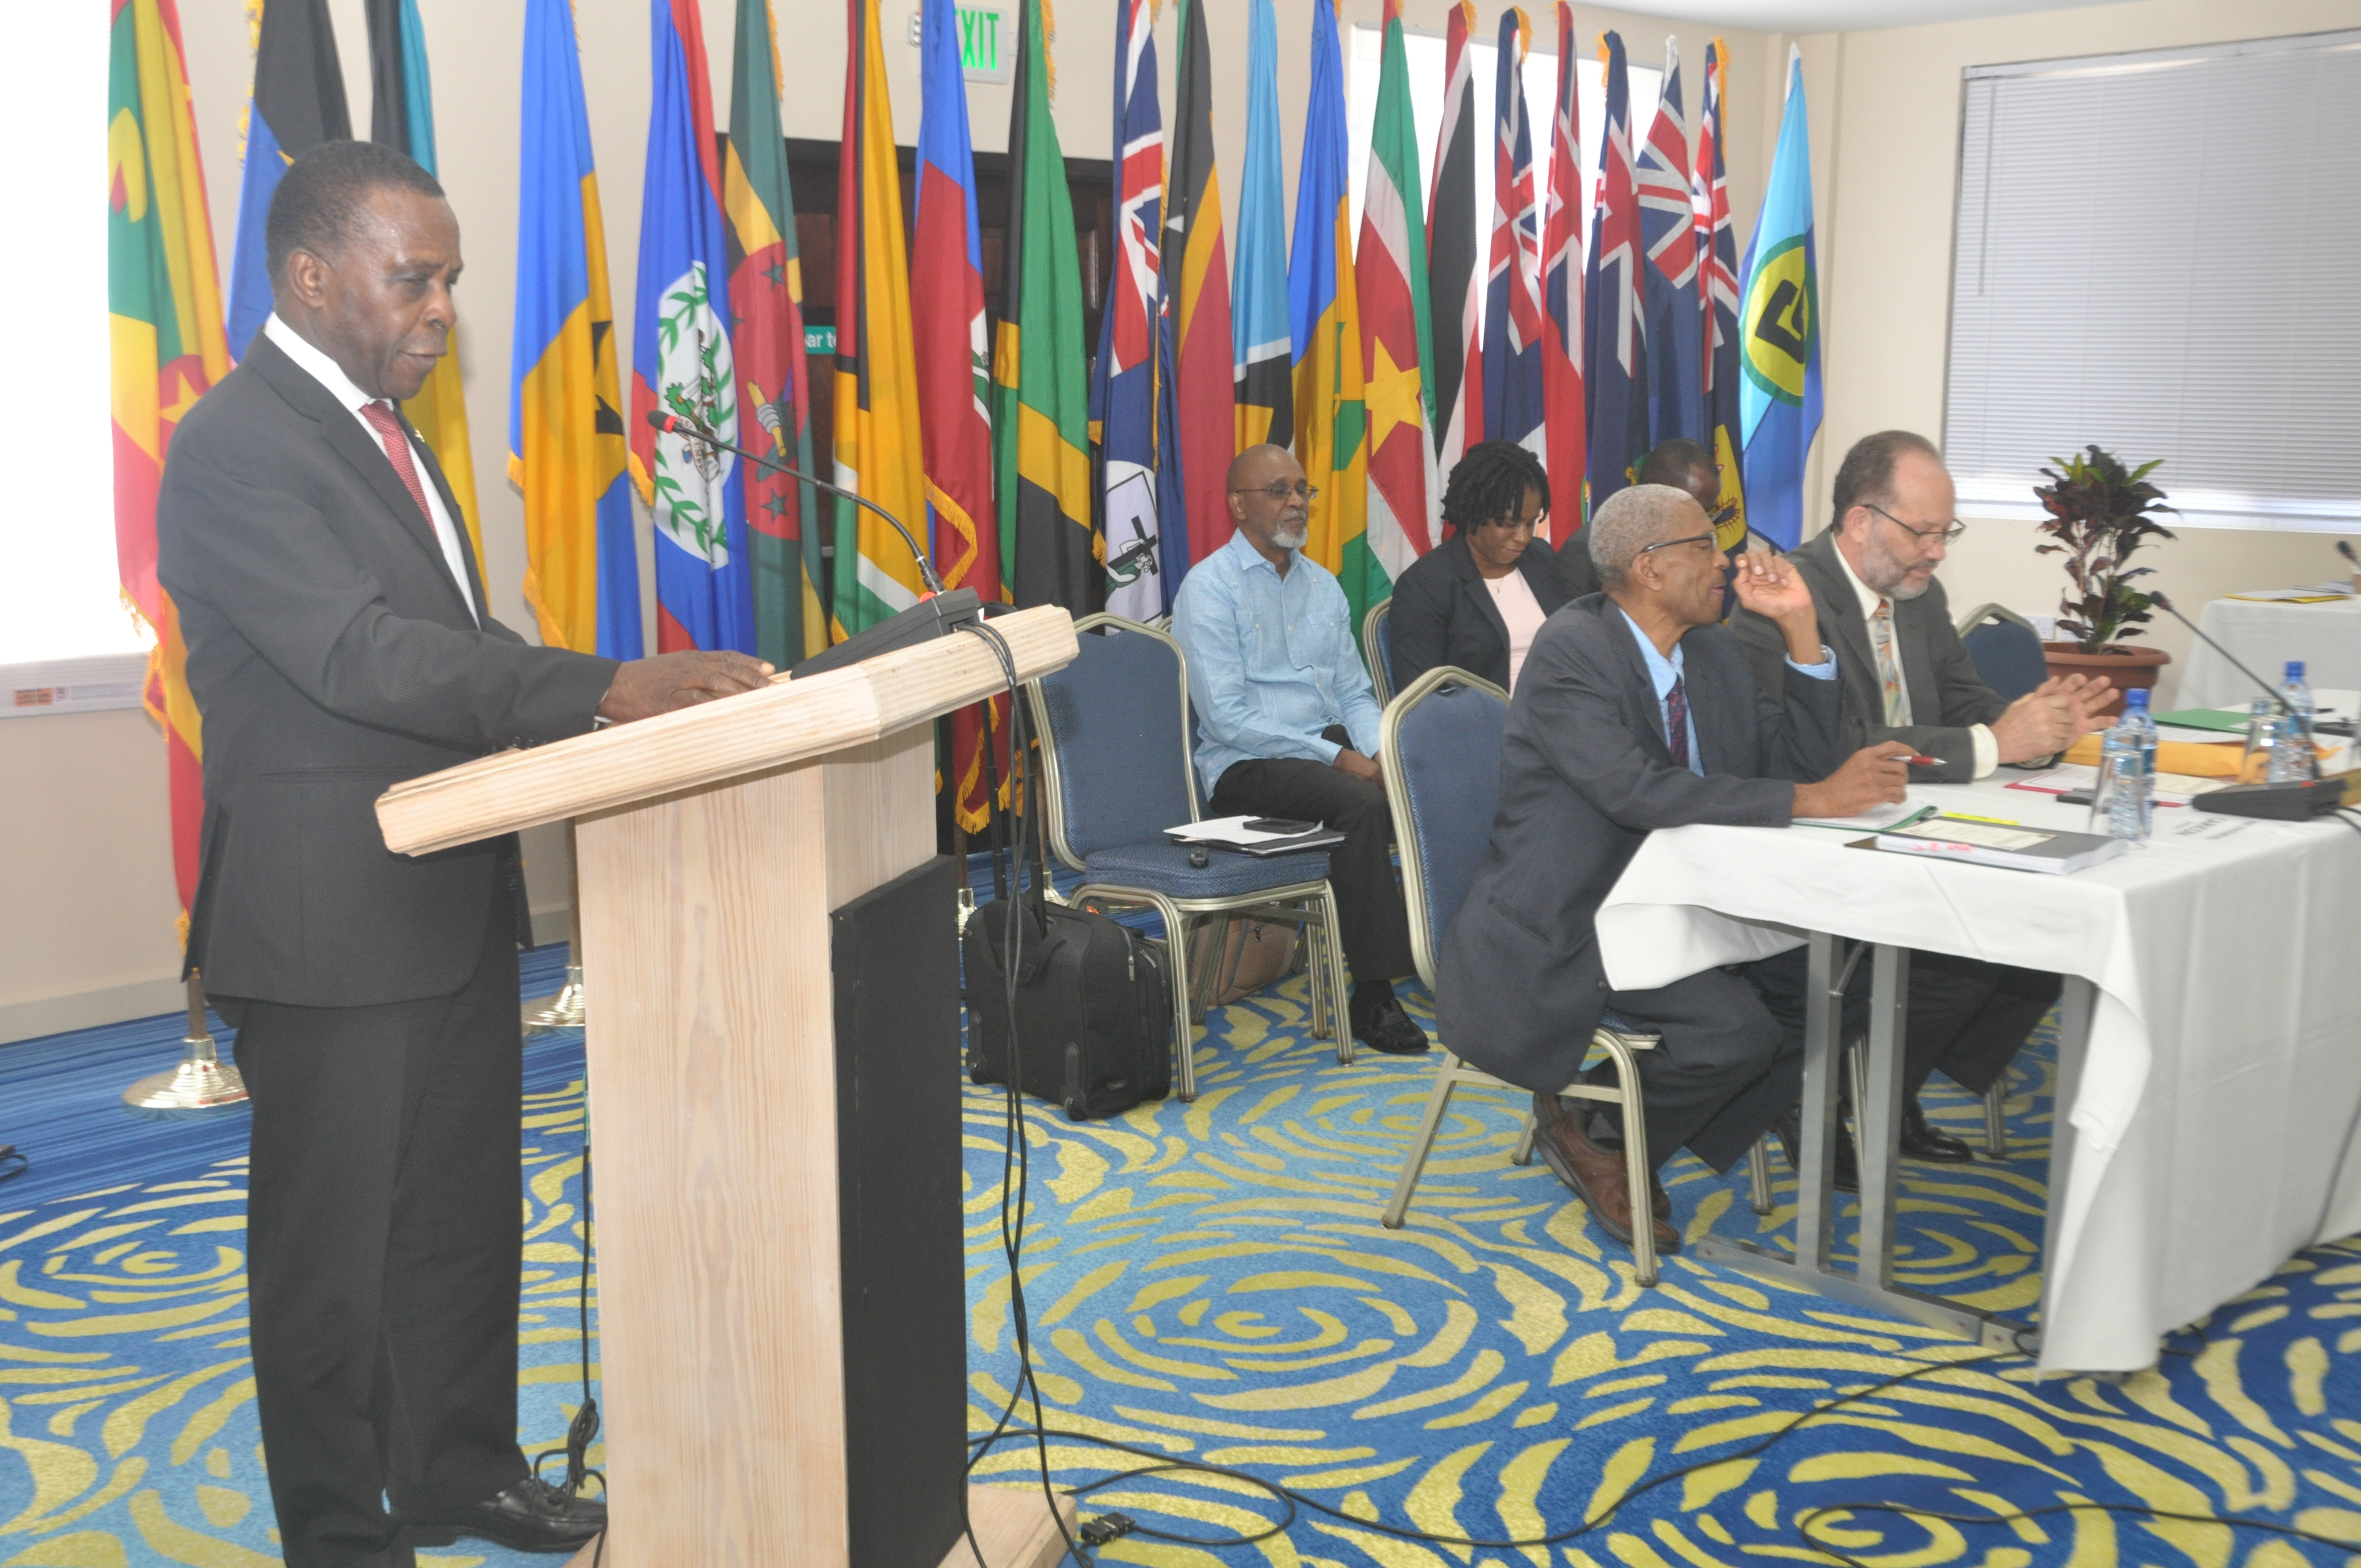 Prime Minister Dr Keith Mitchell of Grenada addressing the CONSLE Meeting